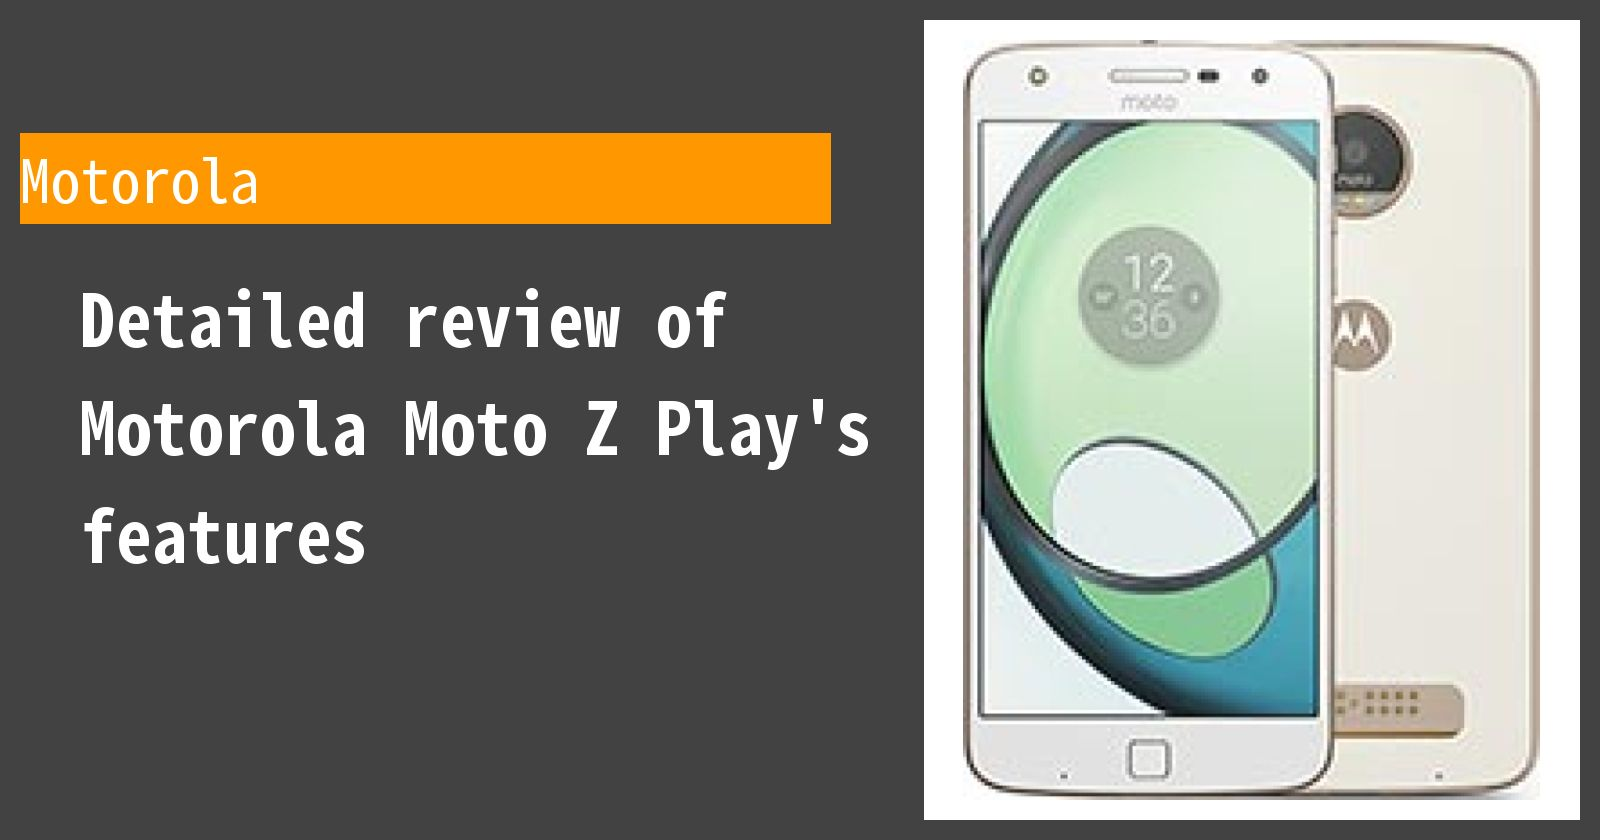 Detailed review of Motorola Moto Z Play's features